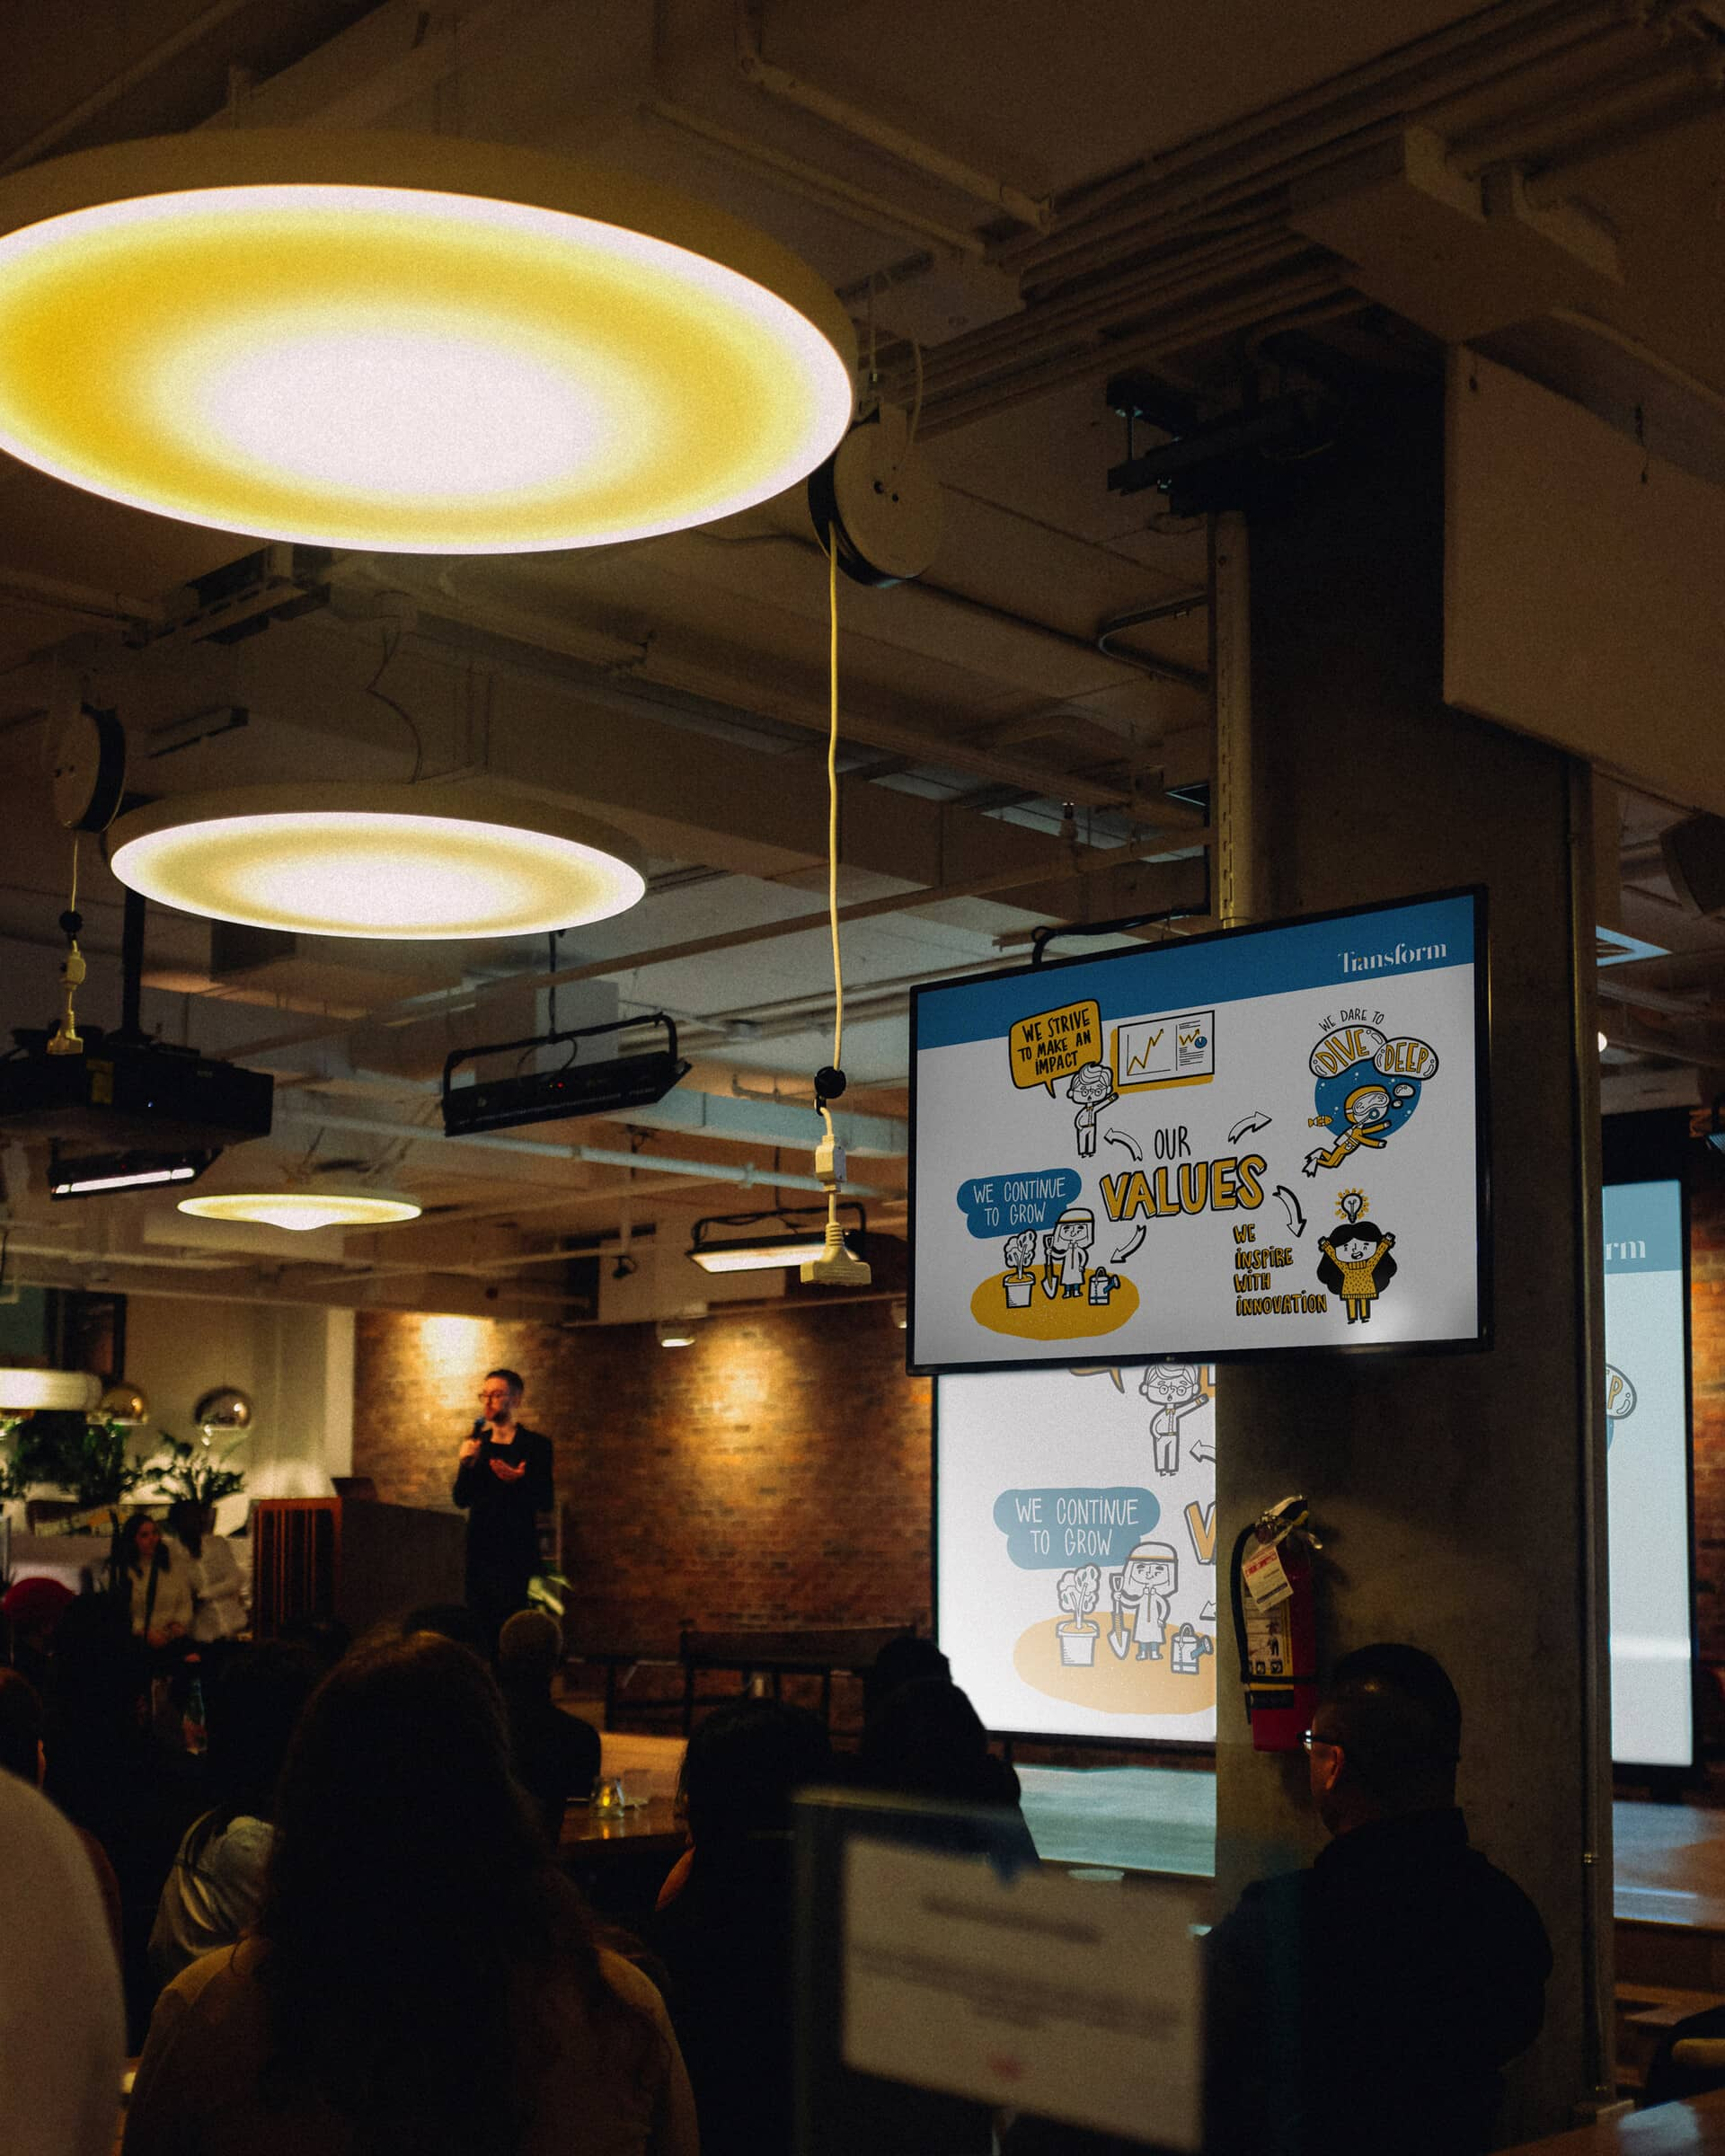 Transform's illustrated Values slide displayed on screens in a crowded room